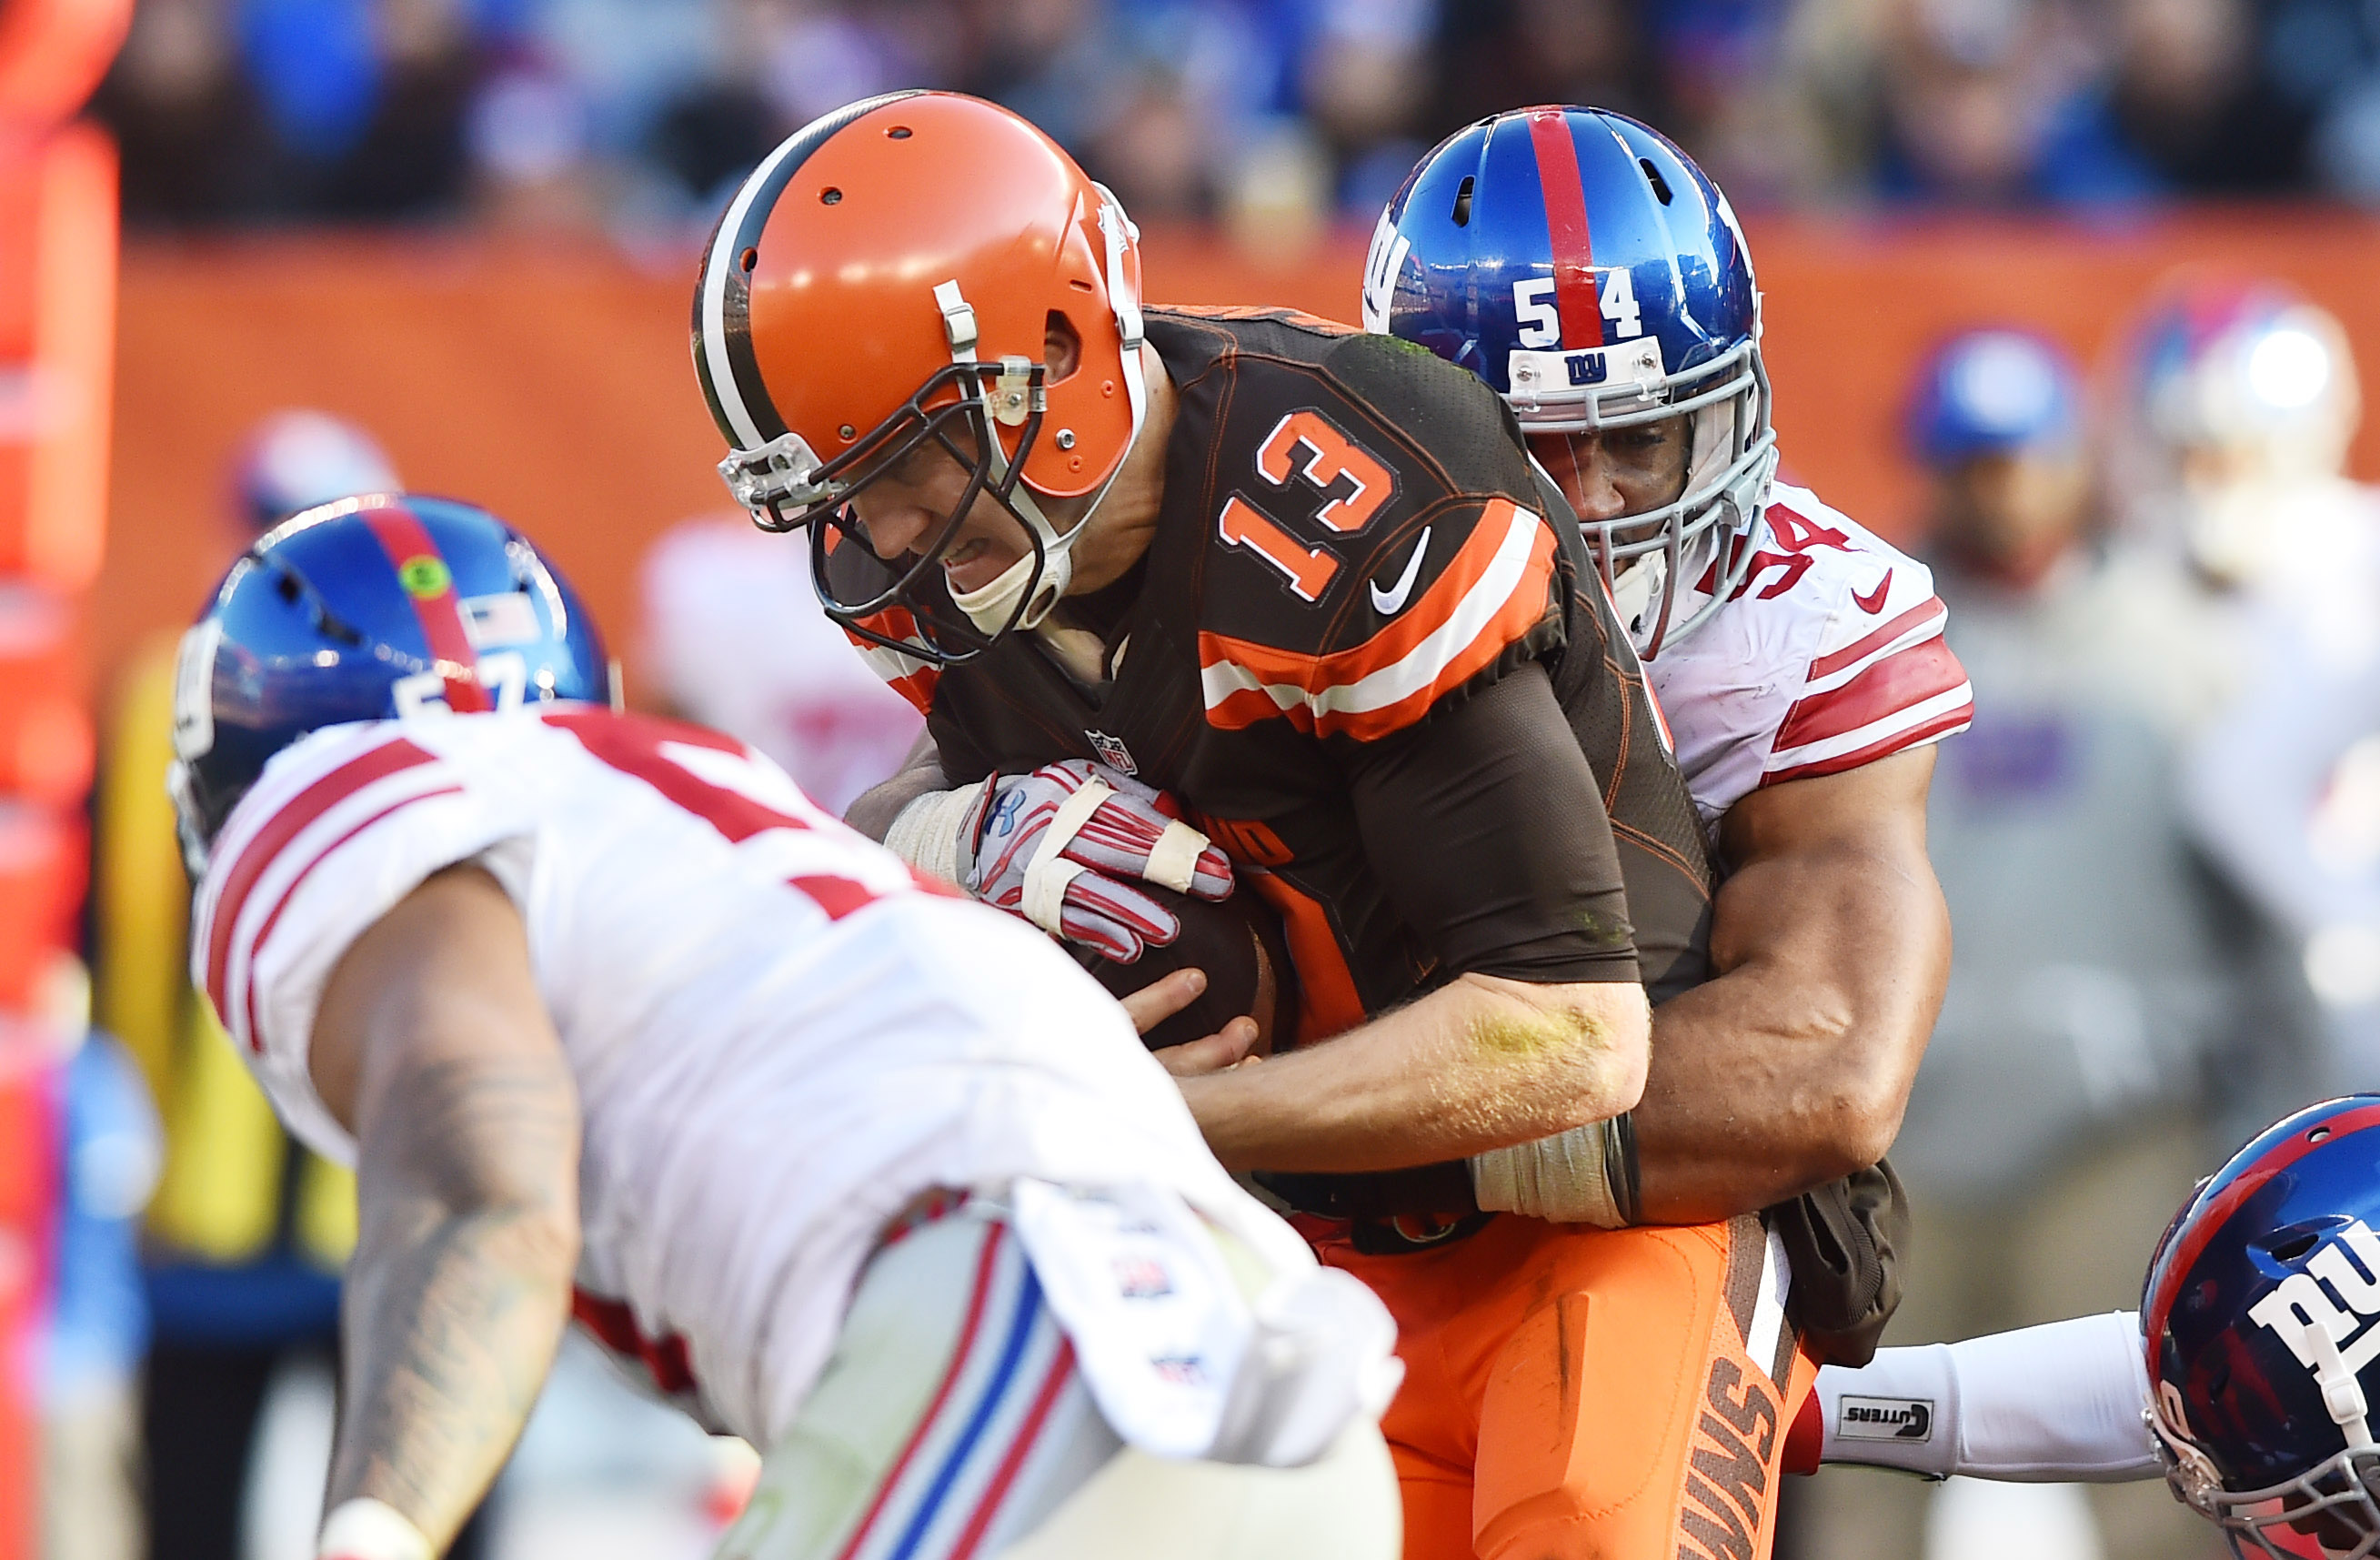 9709178-nfl-new-york-giants-at-cleveland-browns